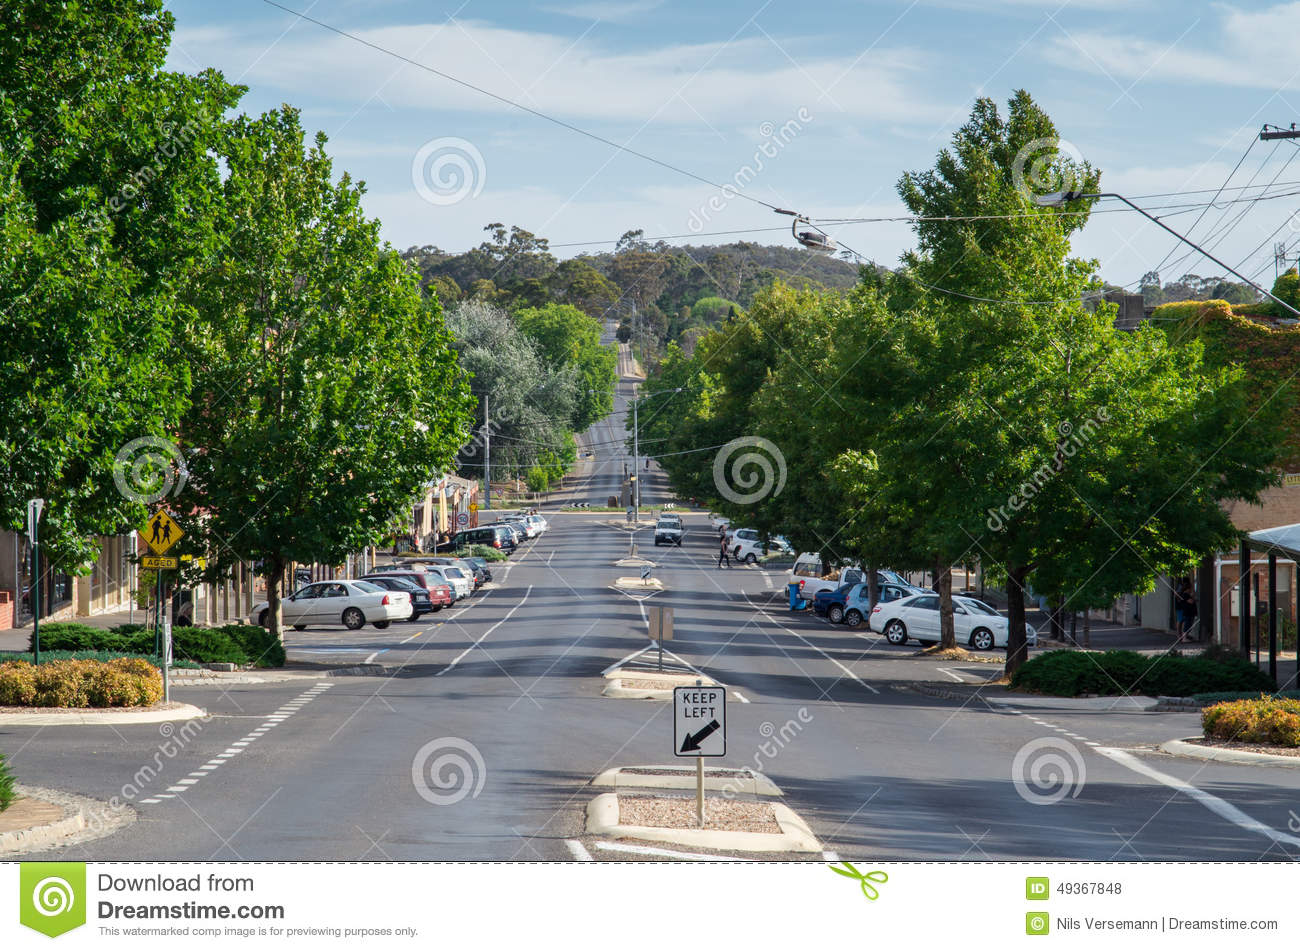 Hargraves Street in Castlemaine